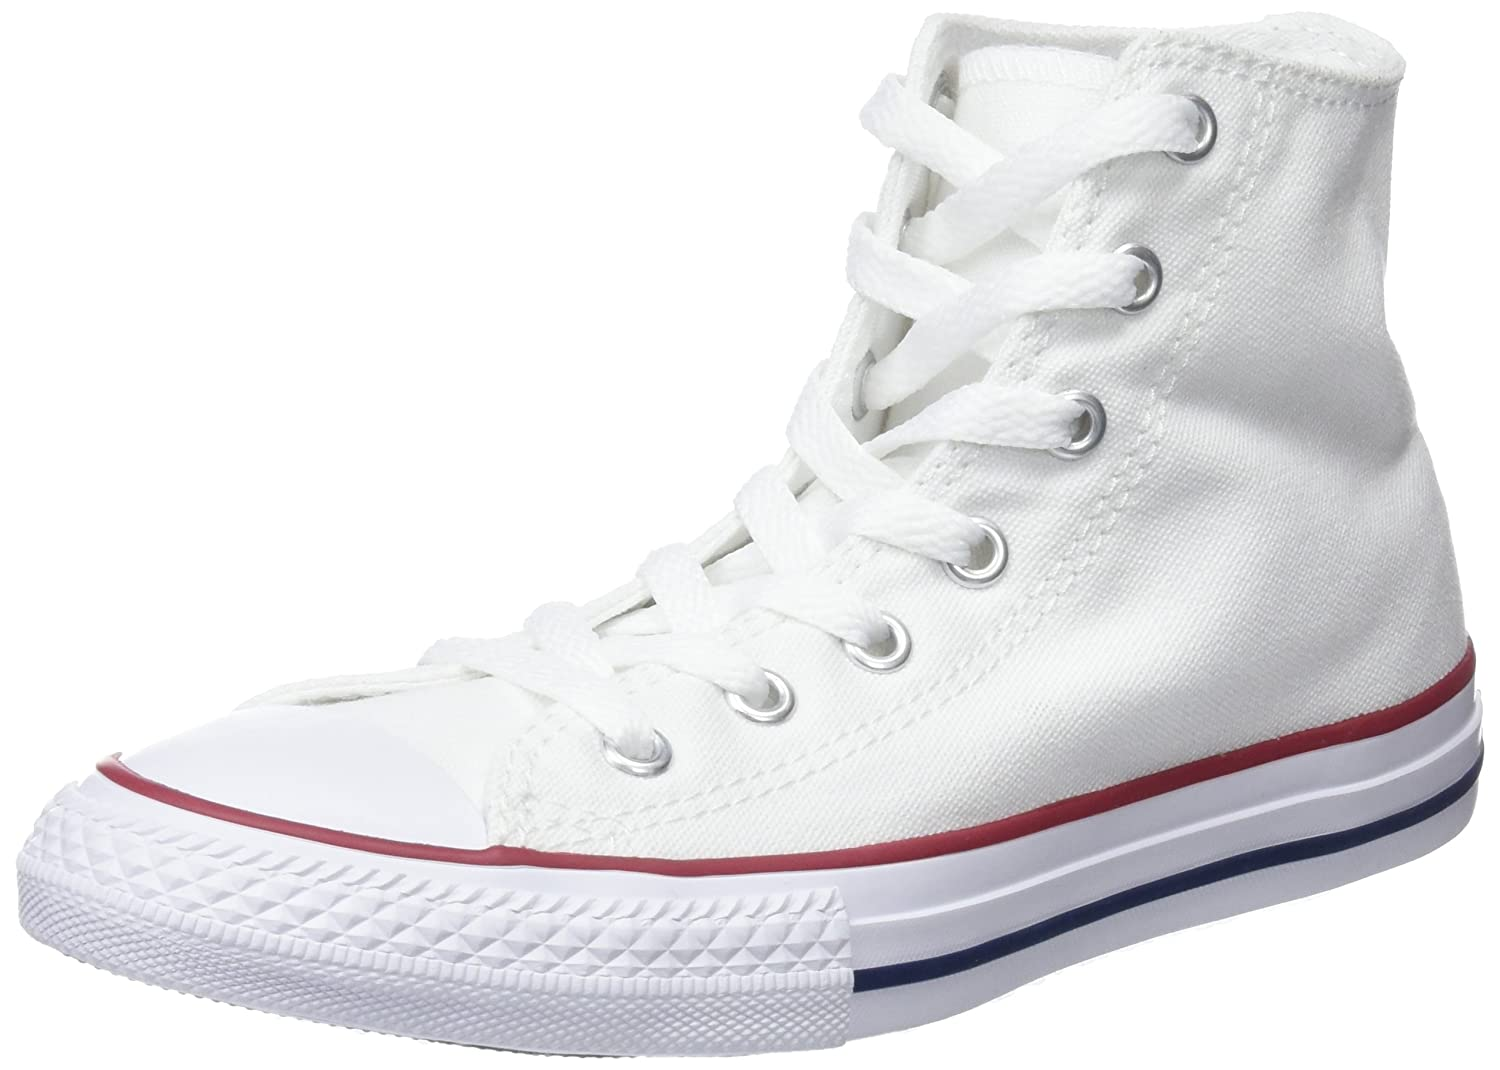 2converse all star hi textile